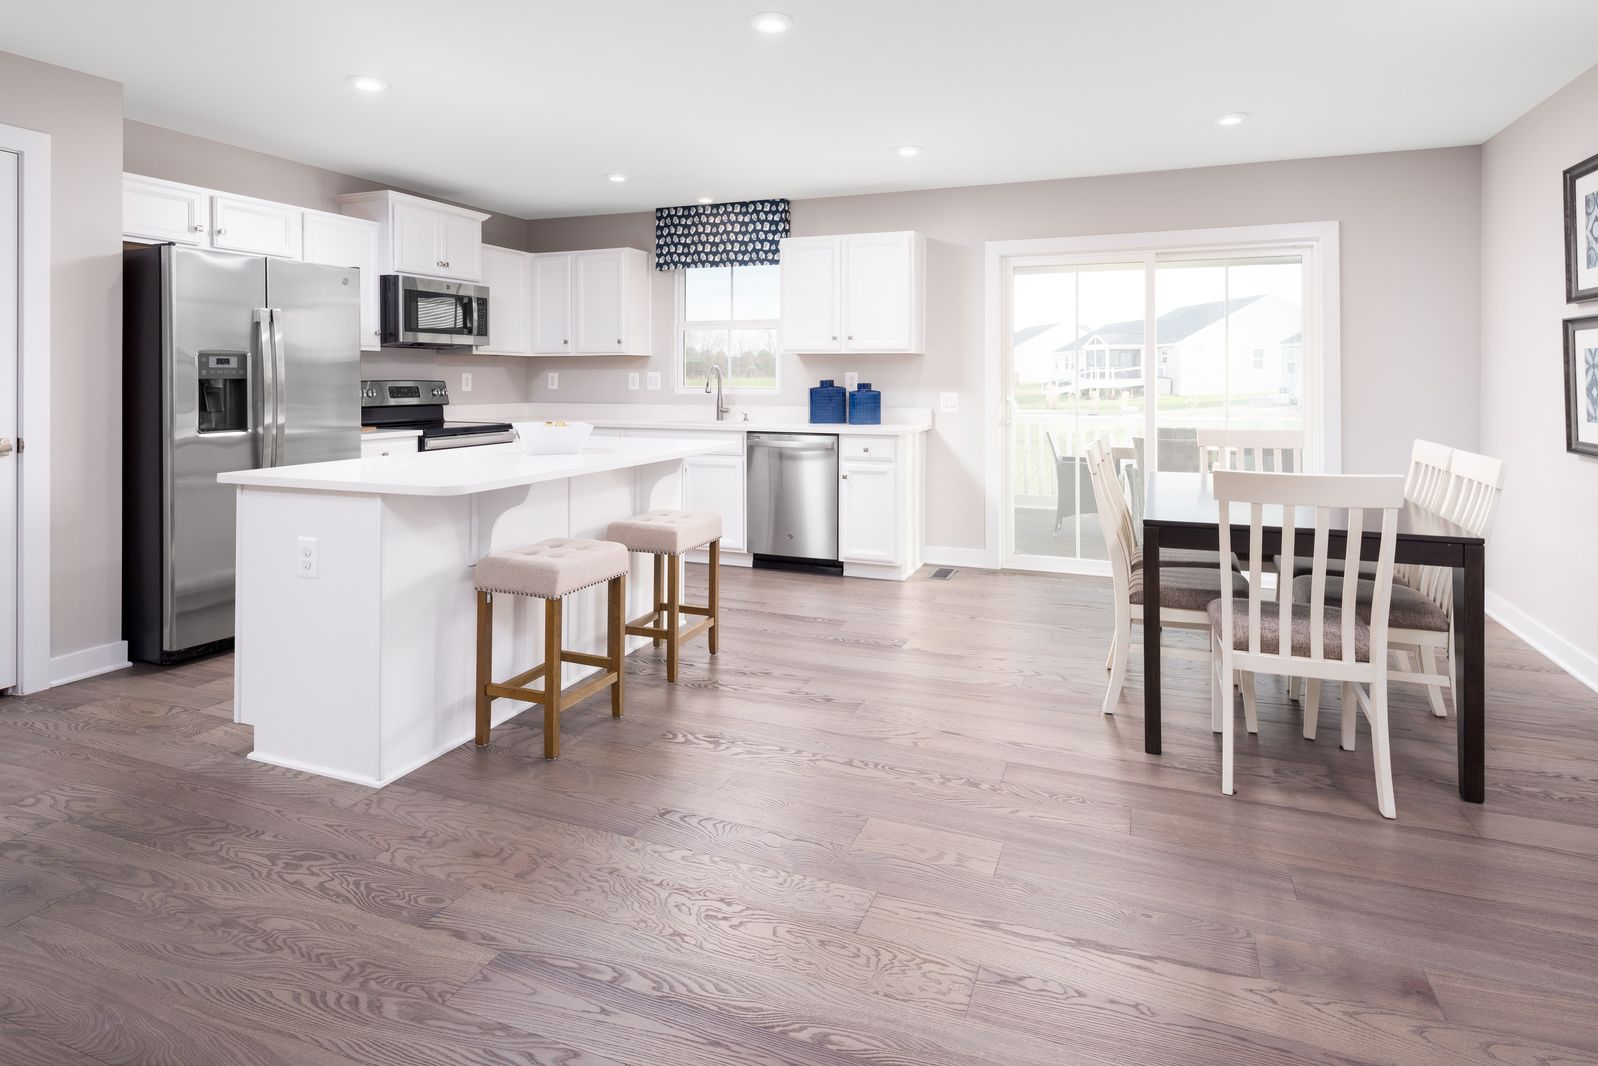 National Floors Direct Reviews: Signs It's Time for a New Kitchen Floor